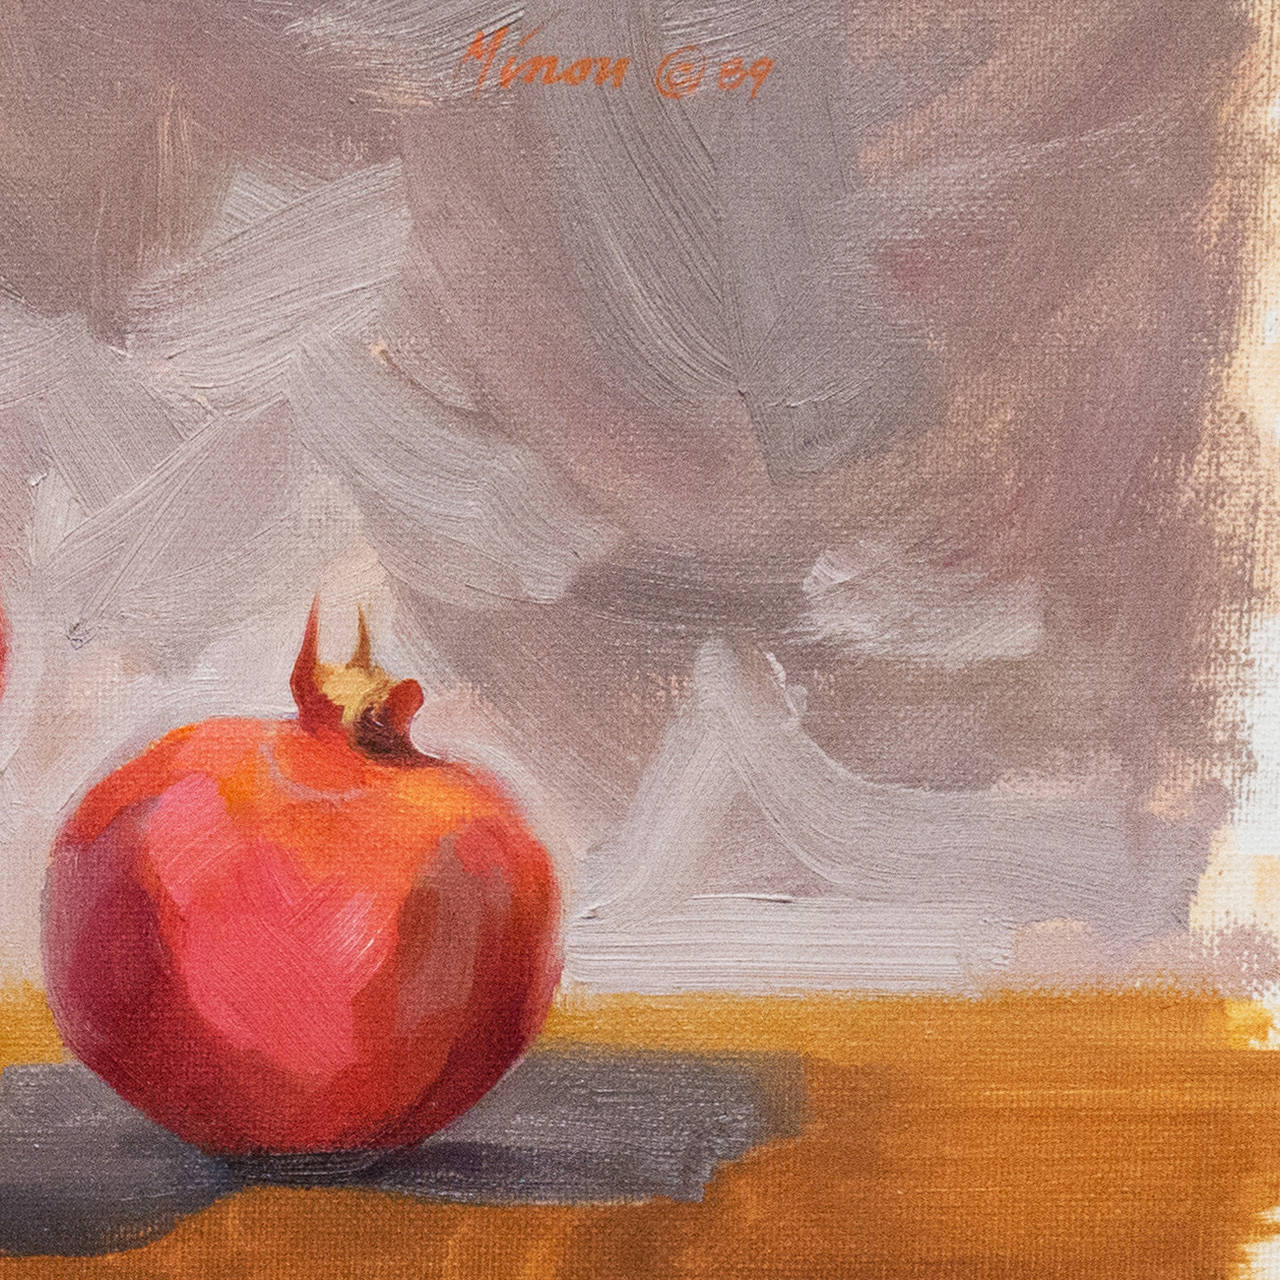 Signed upper right 'Minou' for Carole Minou (American, 1946-2012) and dated 1989.   An elegant oil still-life showing a view of three pomegranates and a child's wooden block arranged behind a delicate Navajo weaving.   A California native, Minou was